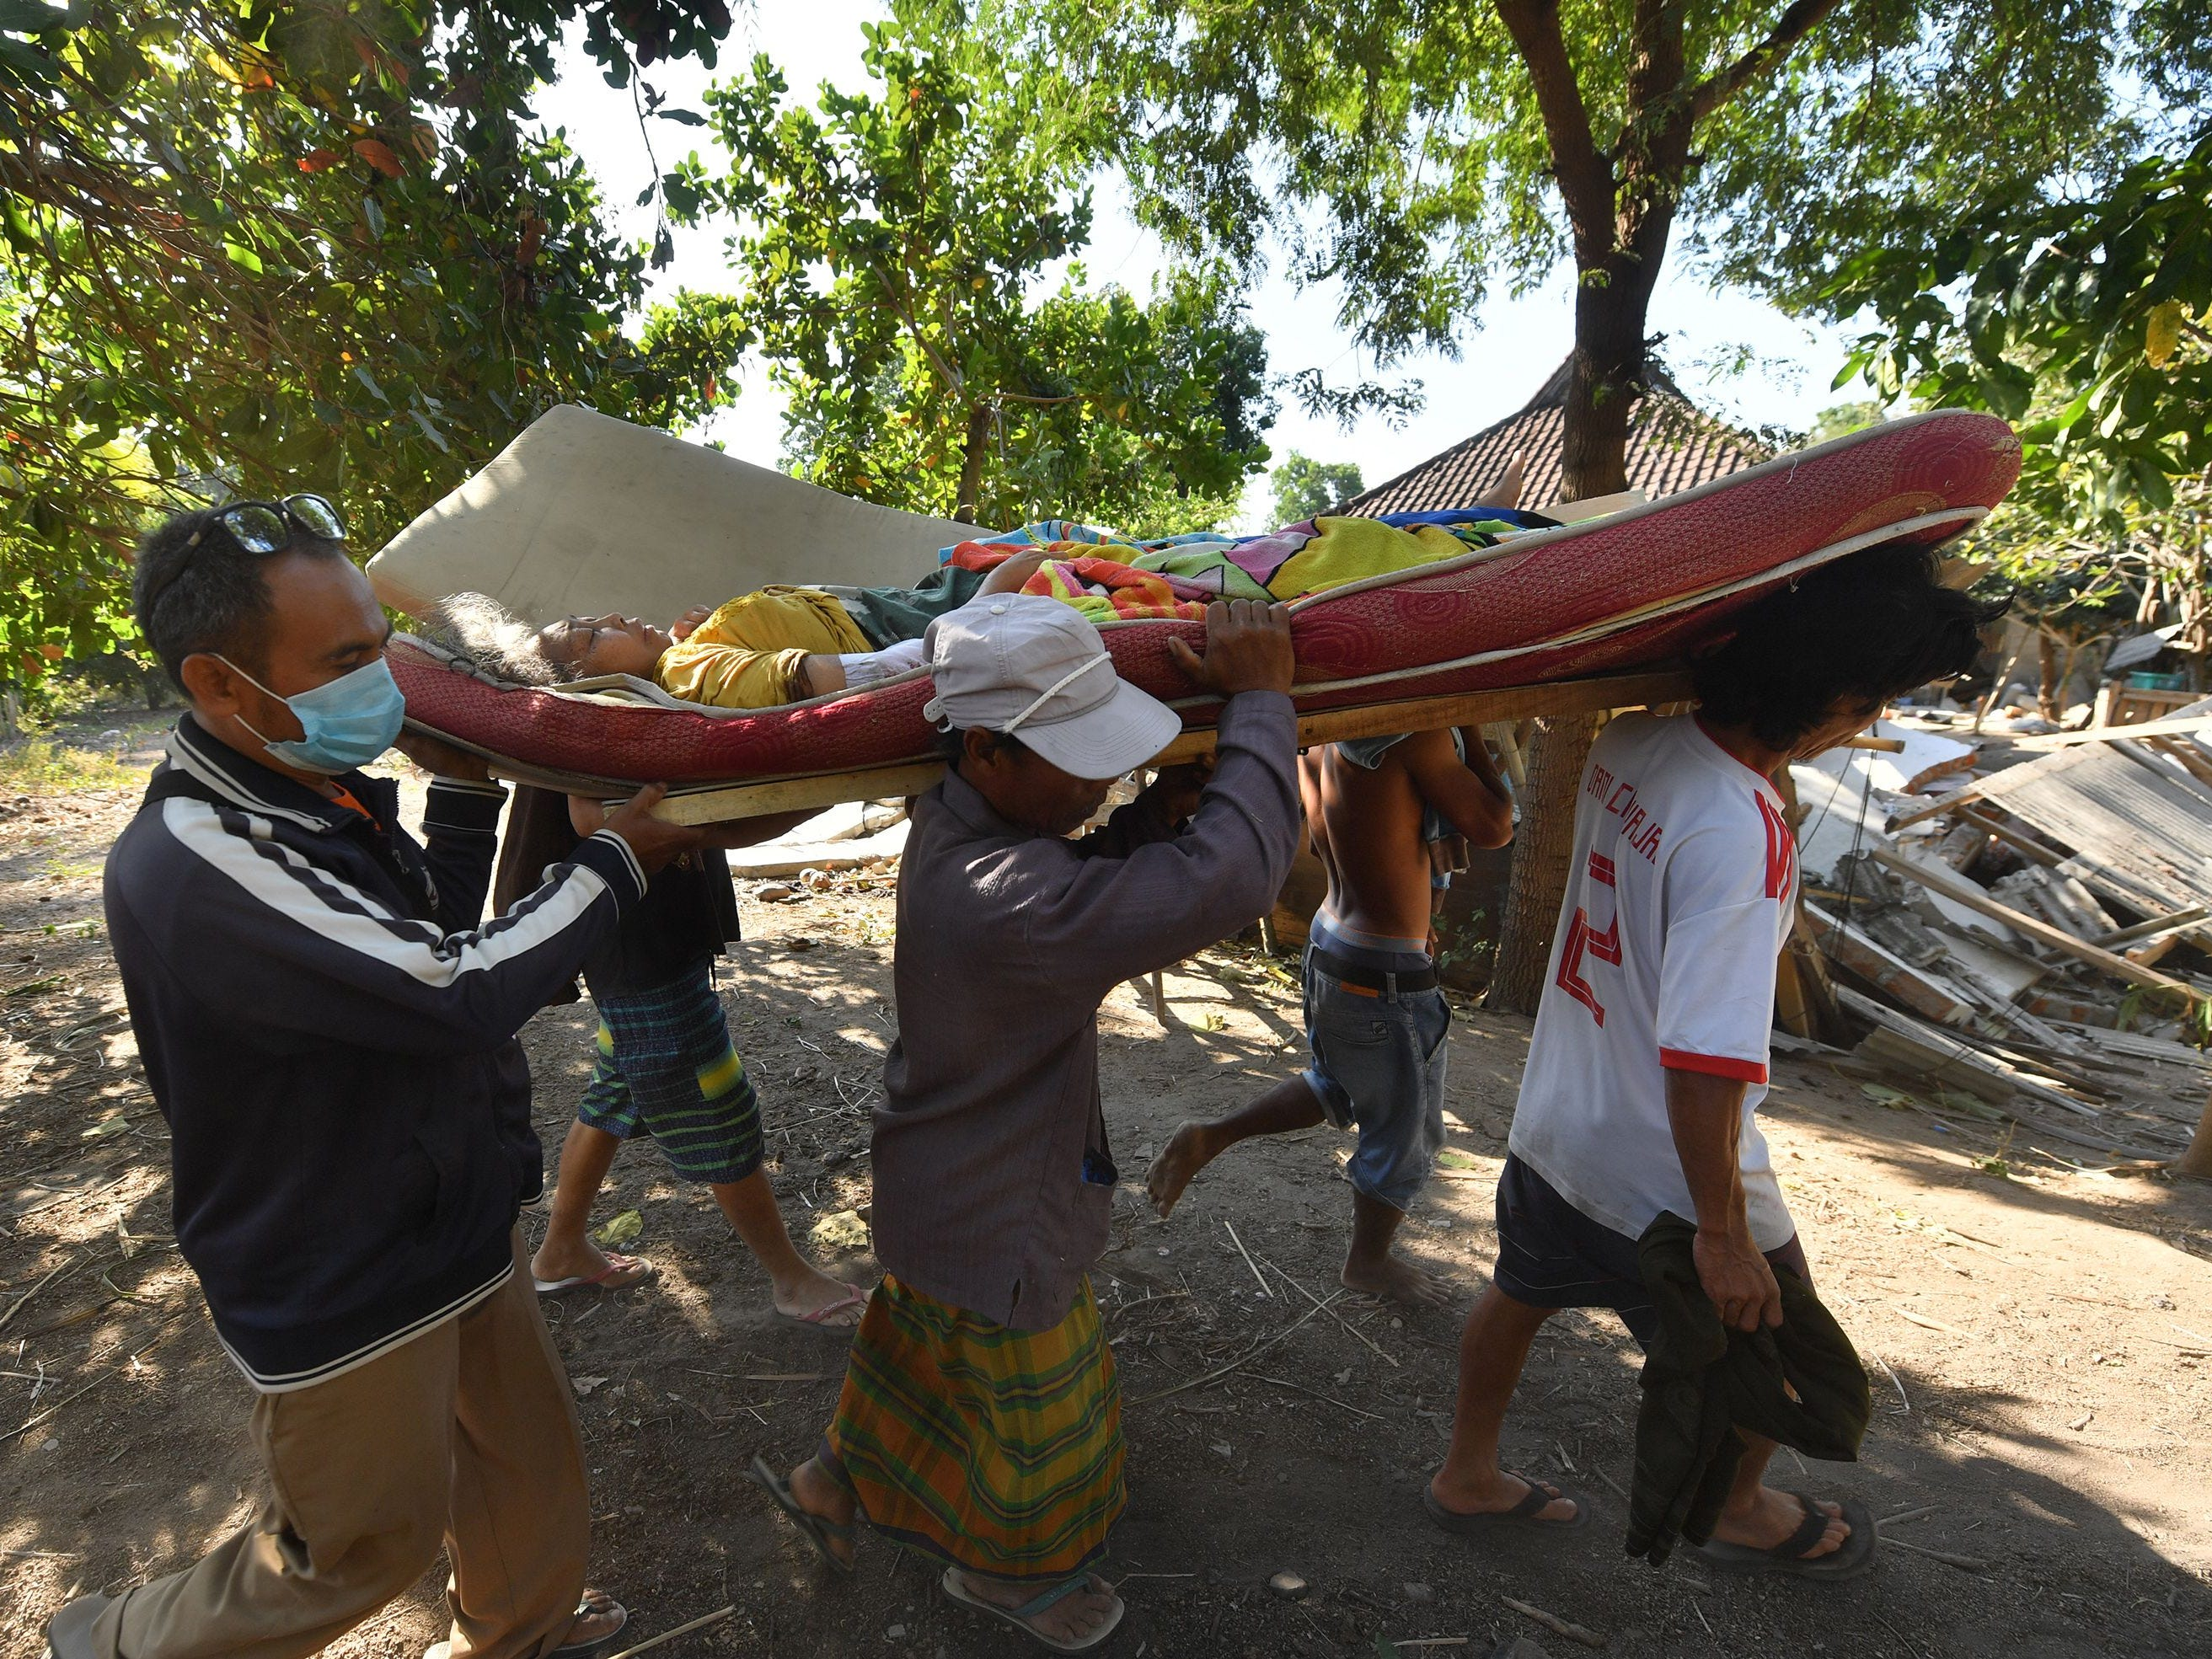 Indonesian people carry an injured woman in Pemenang, North Lombok on Aug. 6, 2018, the day after an earthquake struck the area.